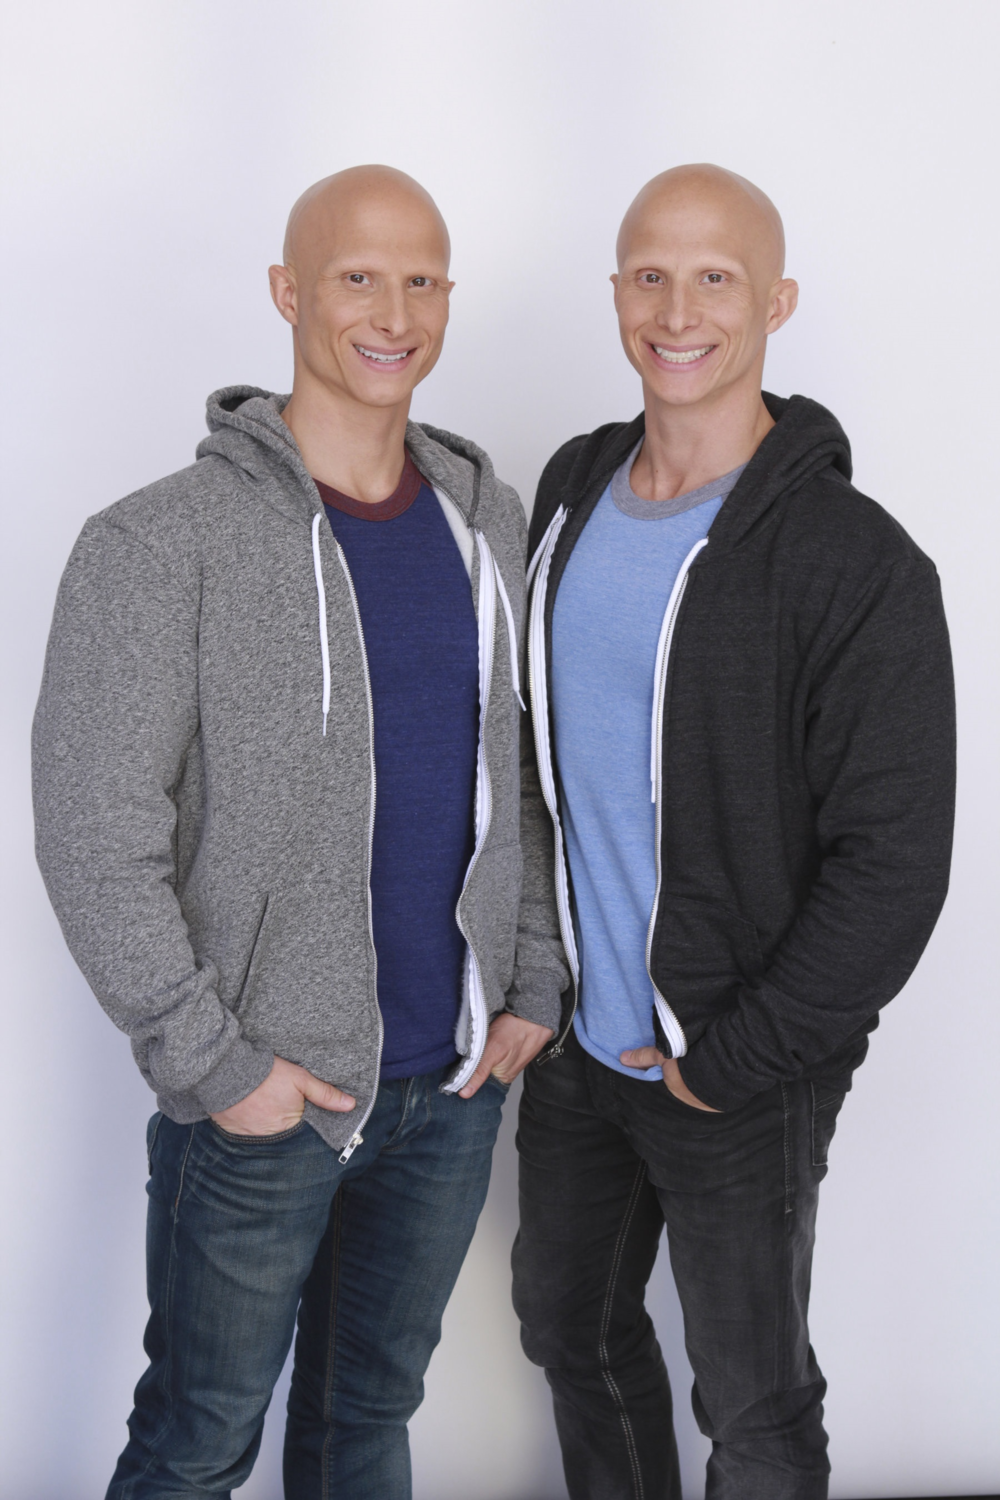 Matt (left) and Mike Perfetuo, Archbishop Williams High School Class of 2000, have achieved success as actors performing in movies, TV commercials and TV series, and are awaiting the February 16 release of their latest movie, Detective Chinatown 2.